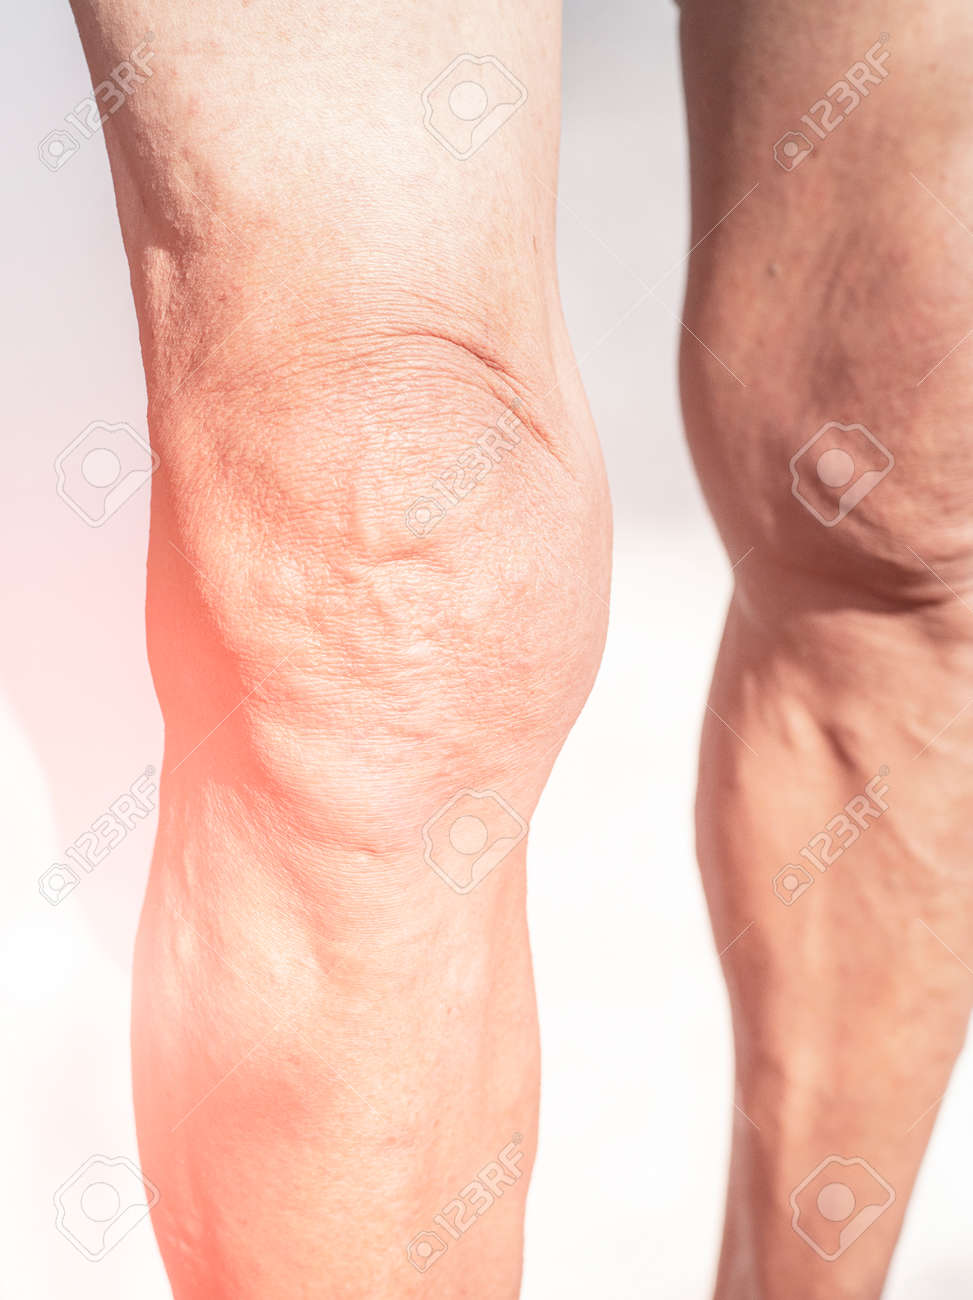 Poor knee joints of the elderly with muscular inflammation and osteoarthritis. - 169285659